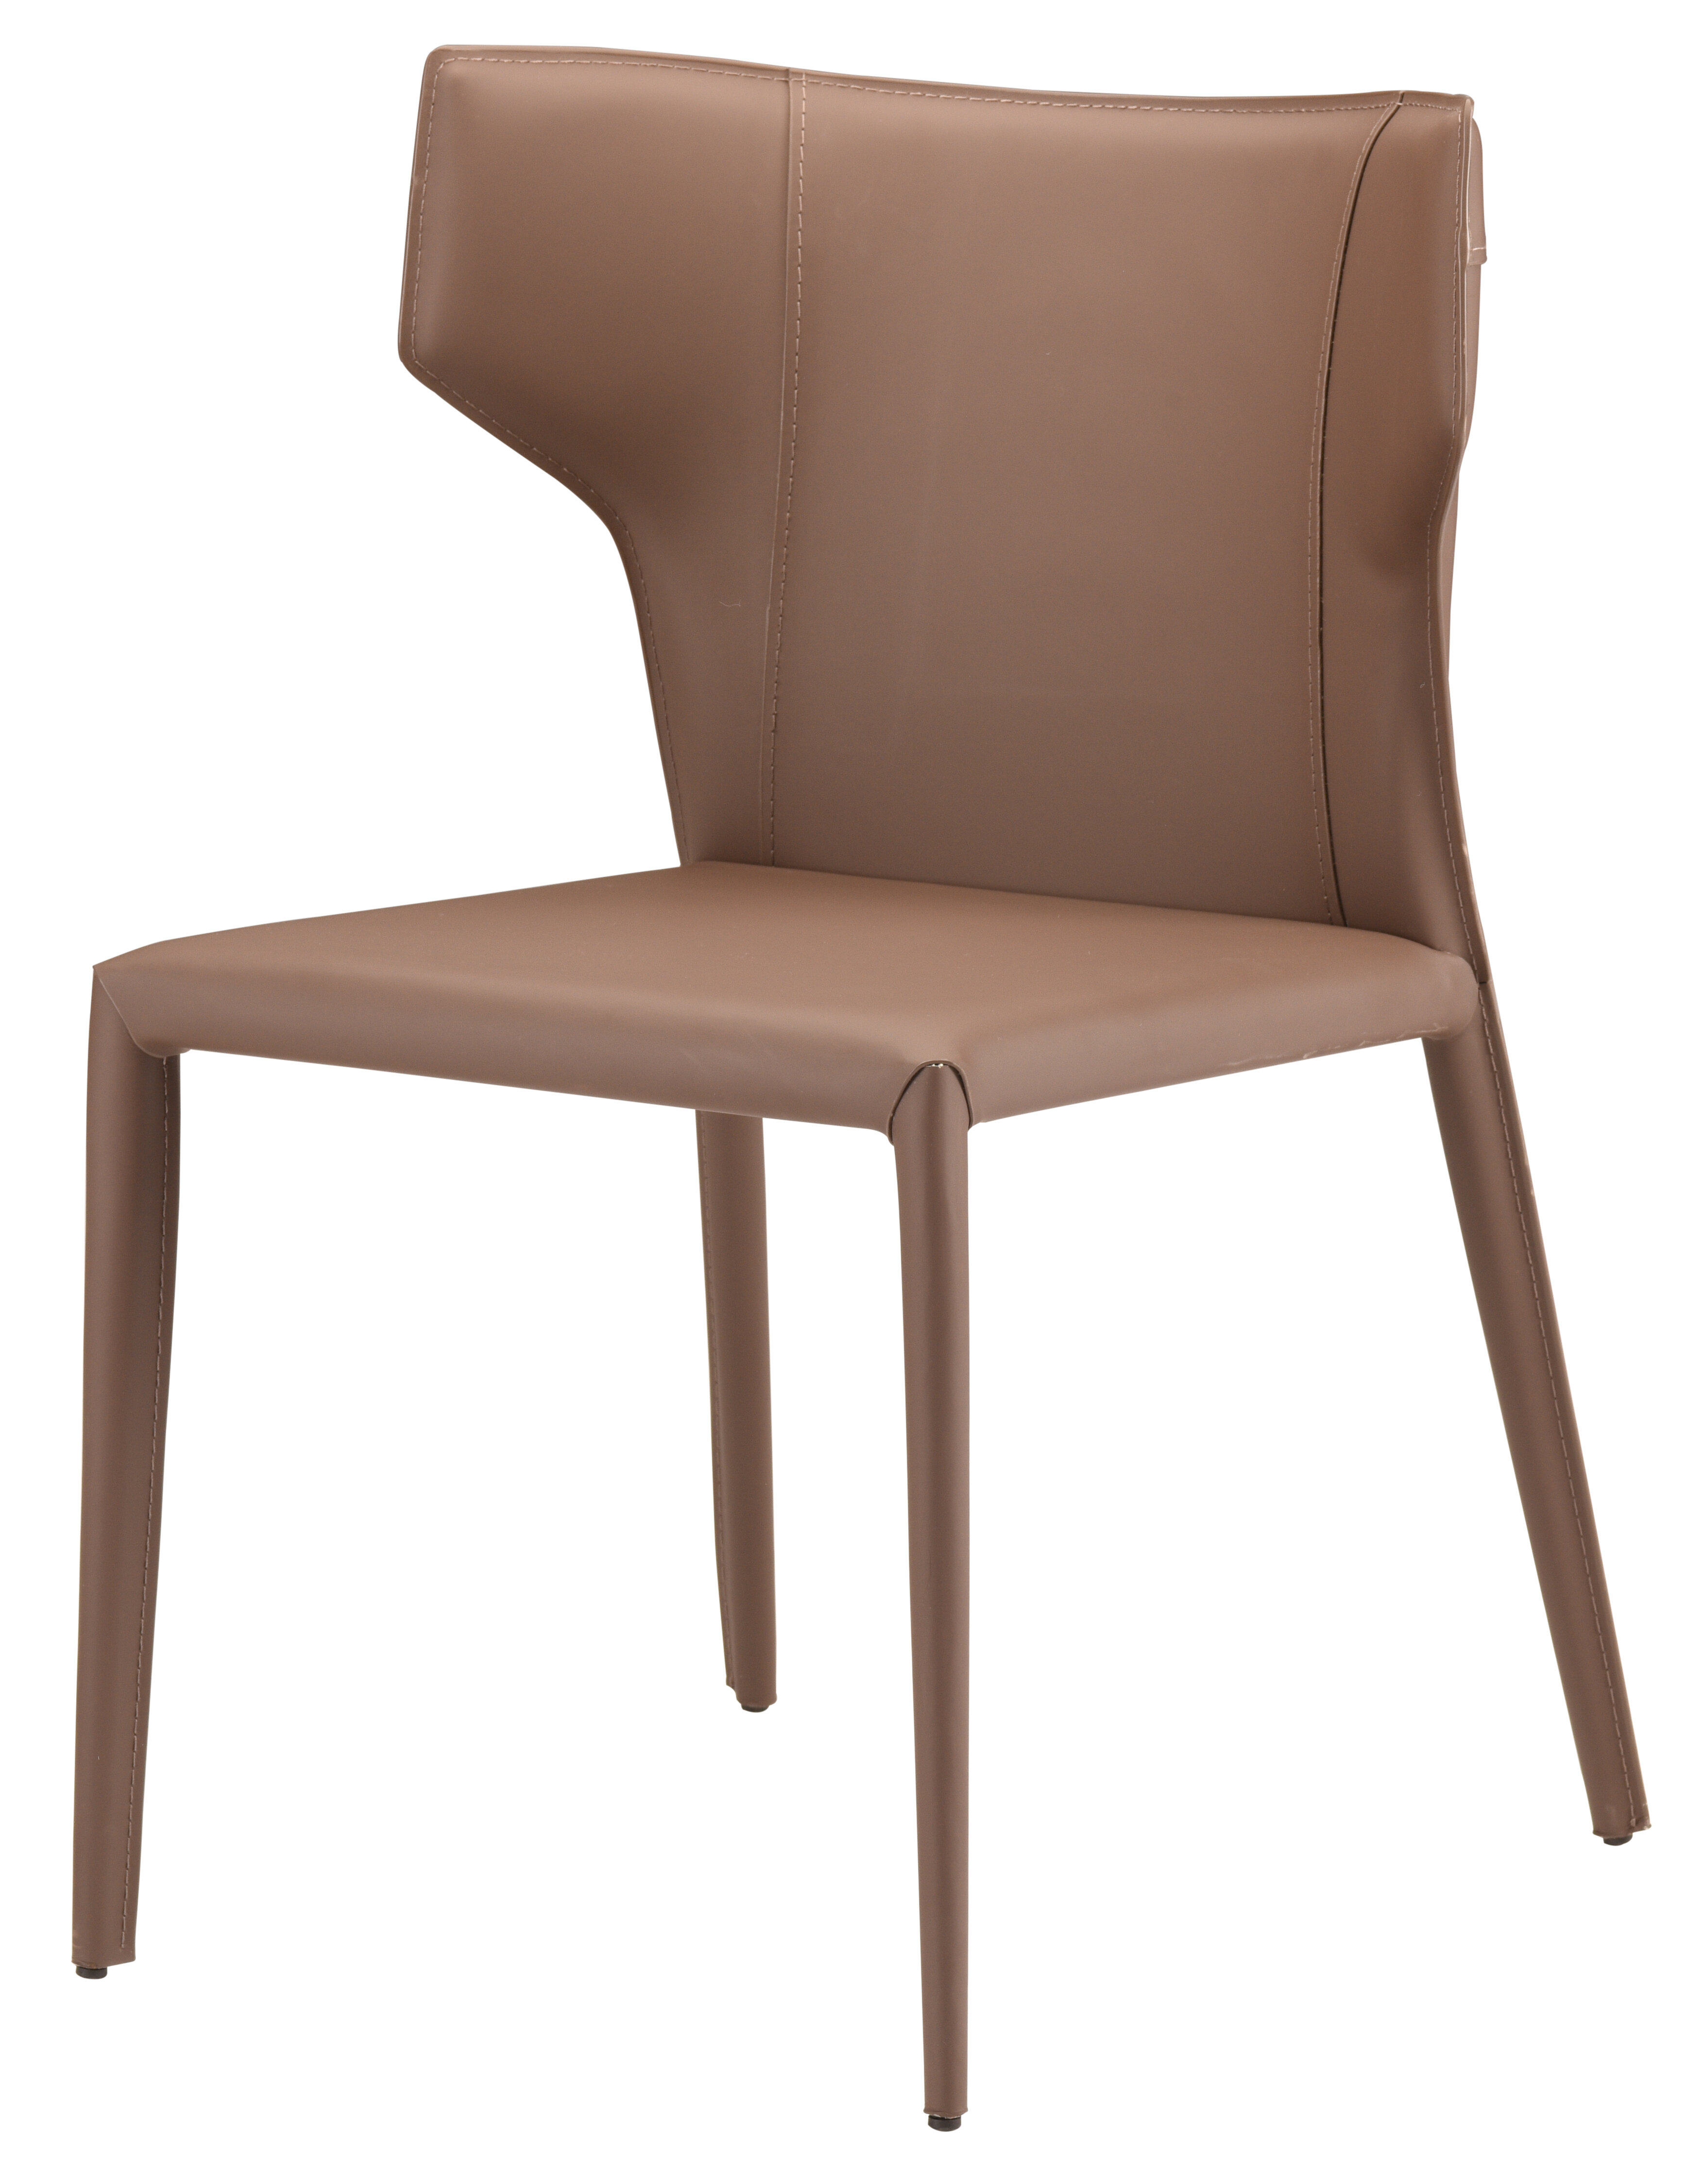 Genuine Leather Kitchen & Dining Chairs On Sale